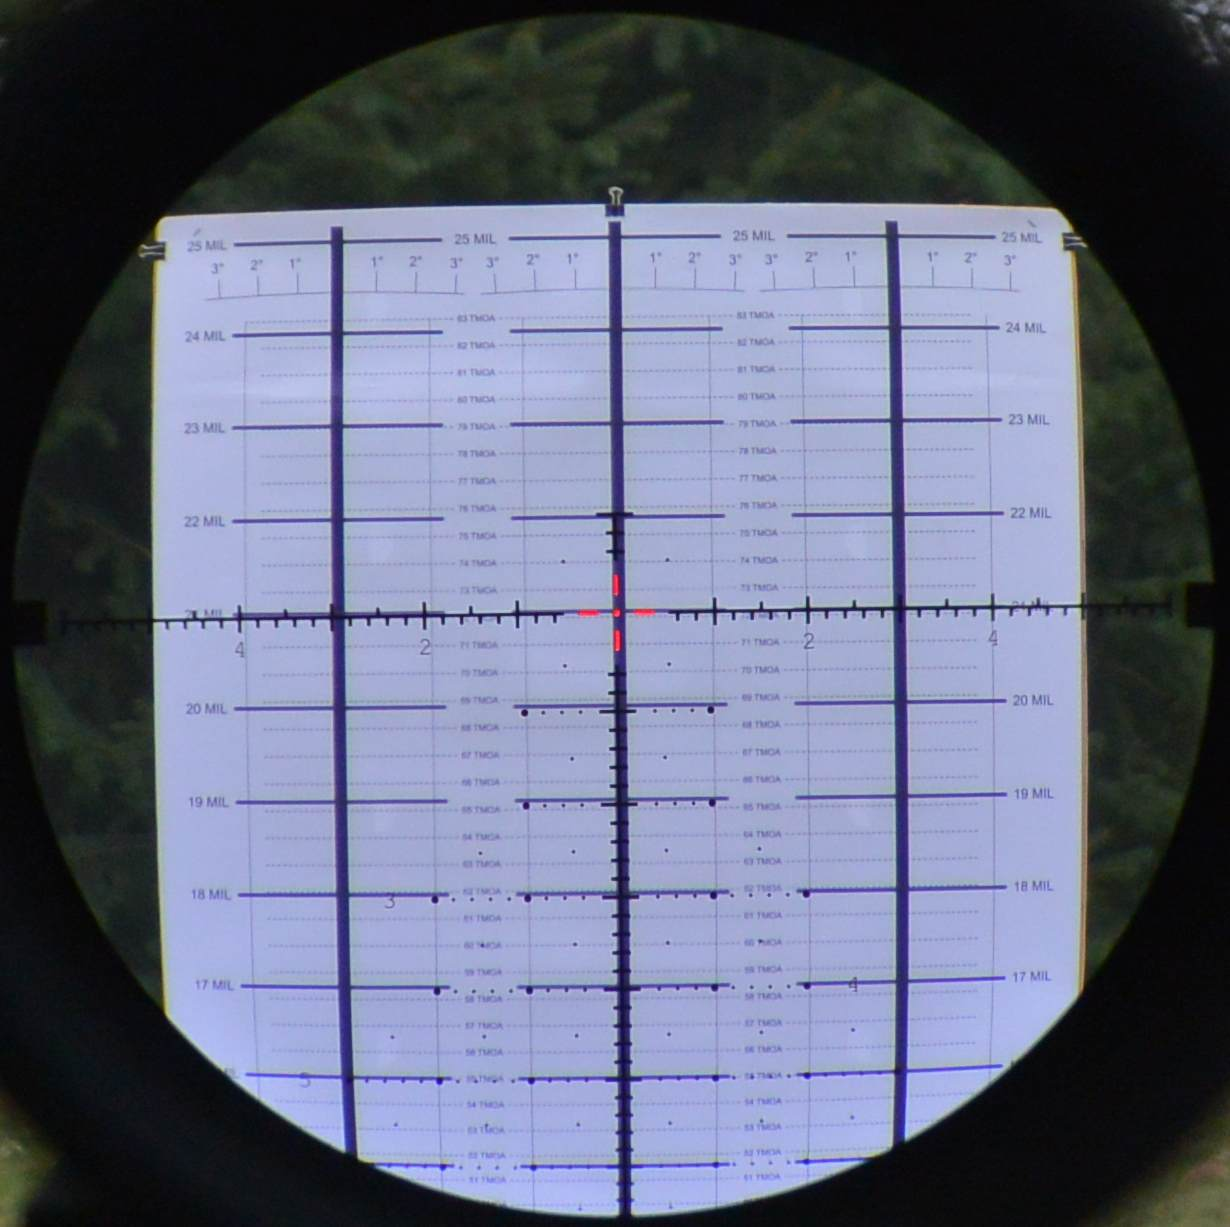 ILya's MRAD RD Reticle in the Meopta Optika6 5-30x56 RD FFP scope on the HORUS CATS target at 30x